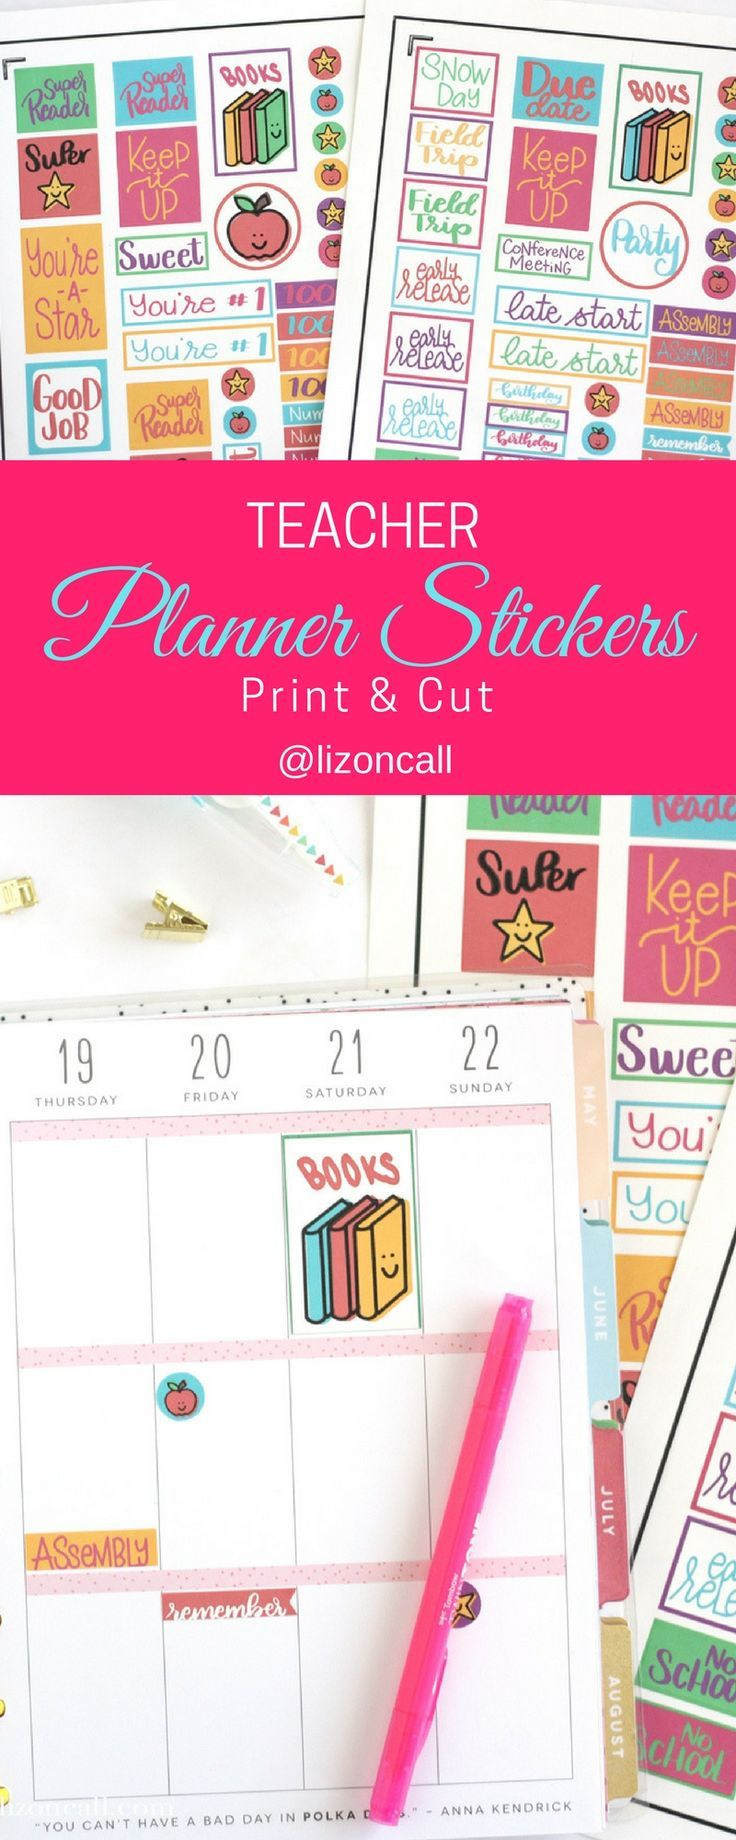 Free Teacher Planner Stickers Print and Cut | Teacher ...